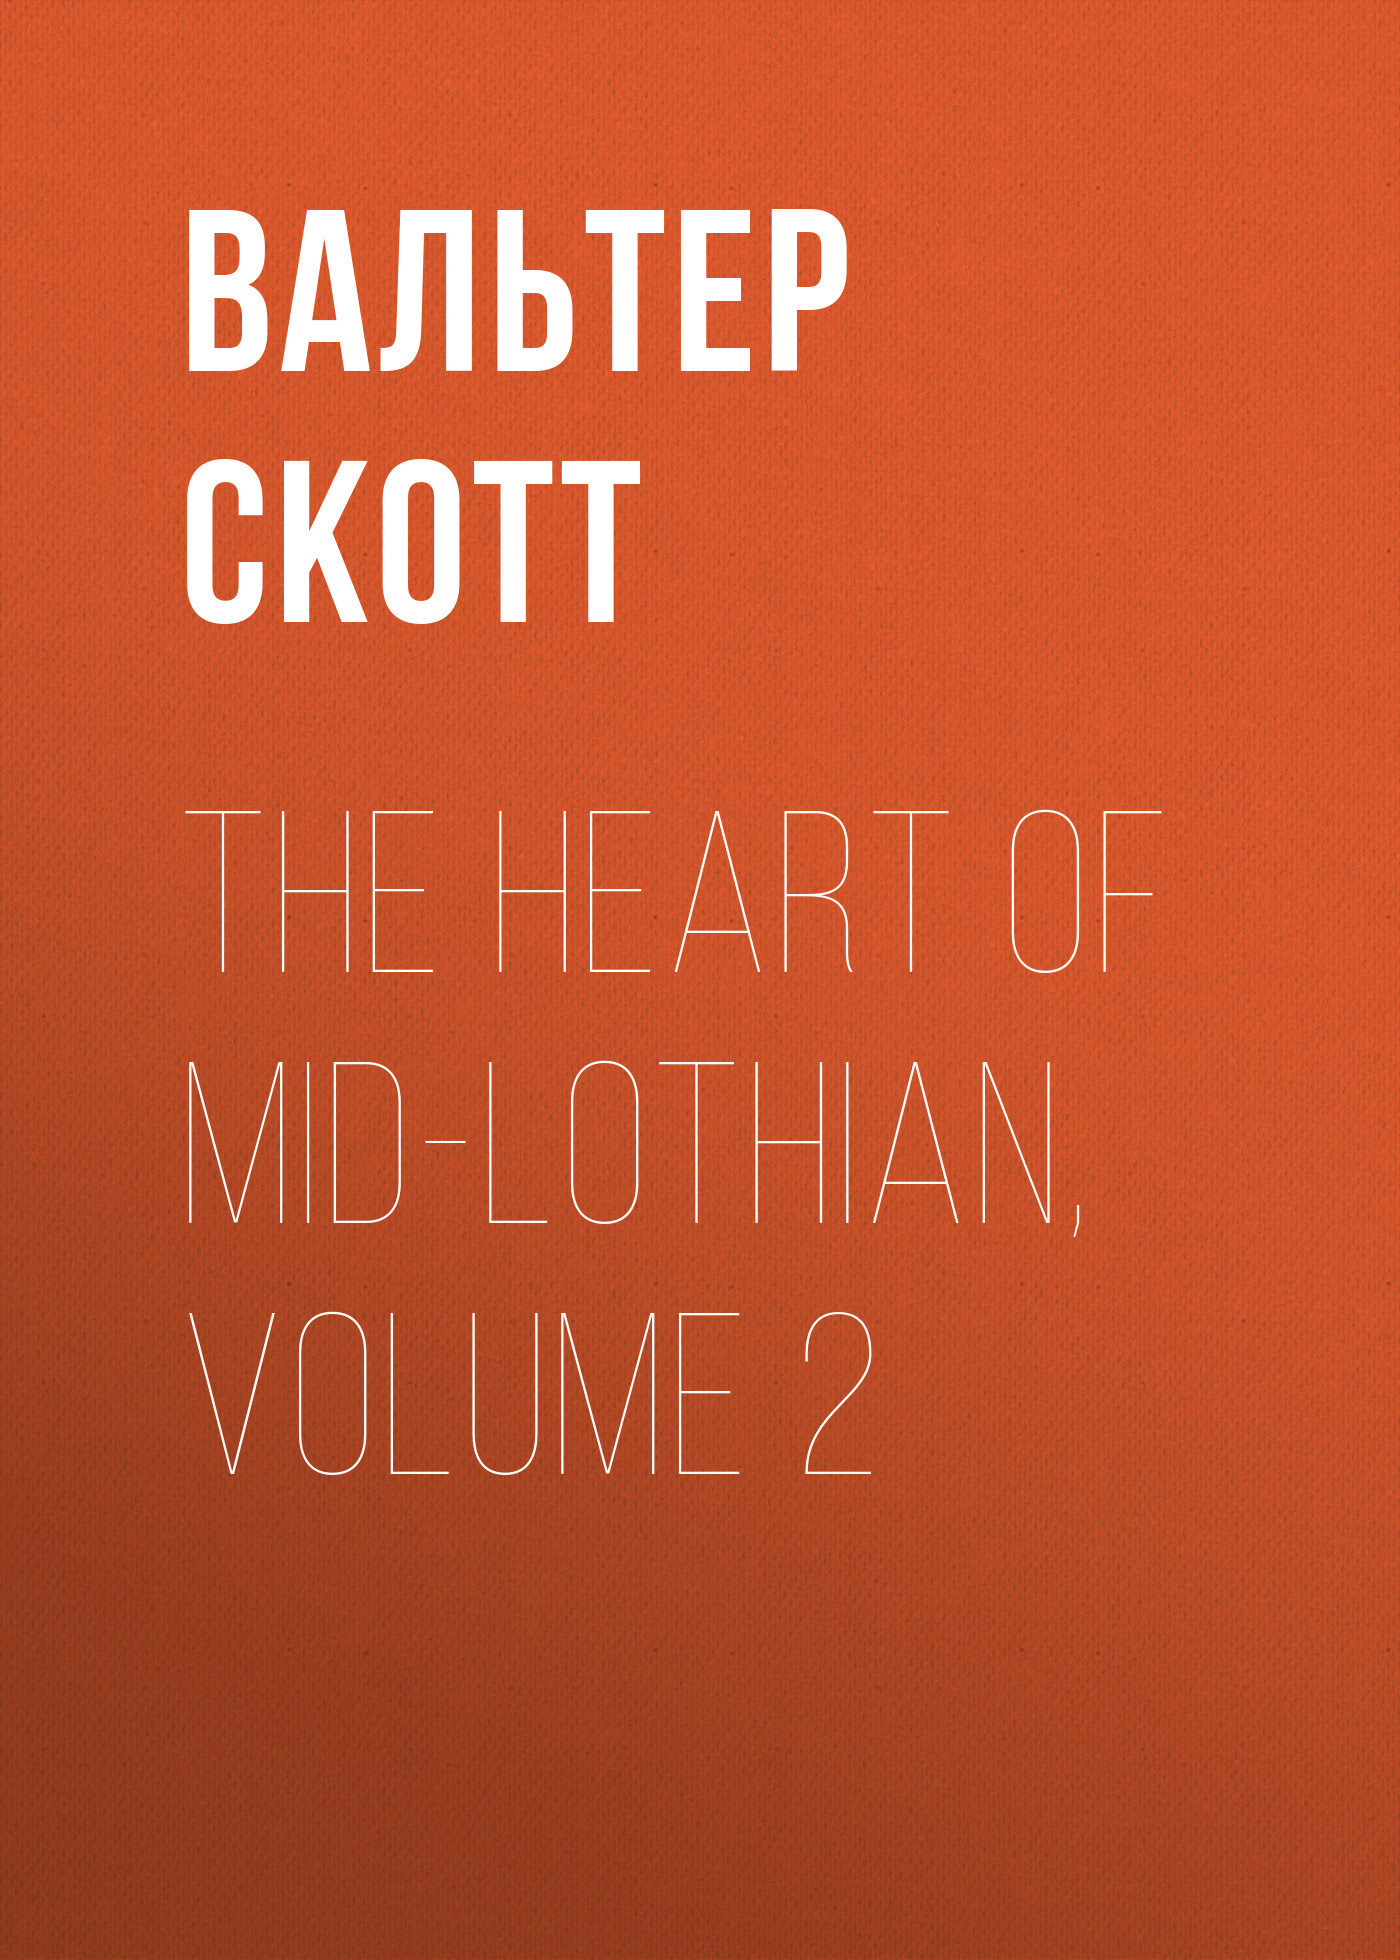 Вальтер Скотт The Heart of Mid-Lothian, Volume 2 вальтер скотт the bride of lammermoor